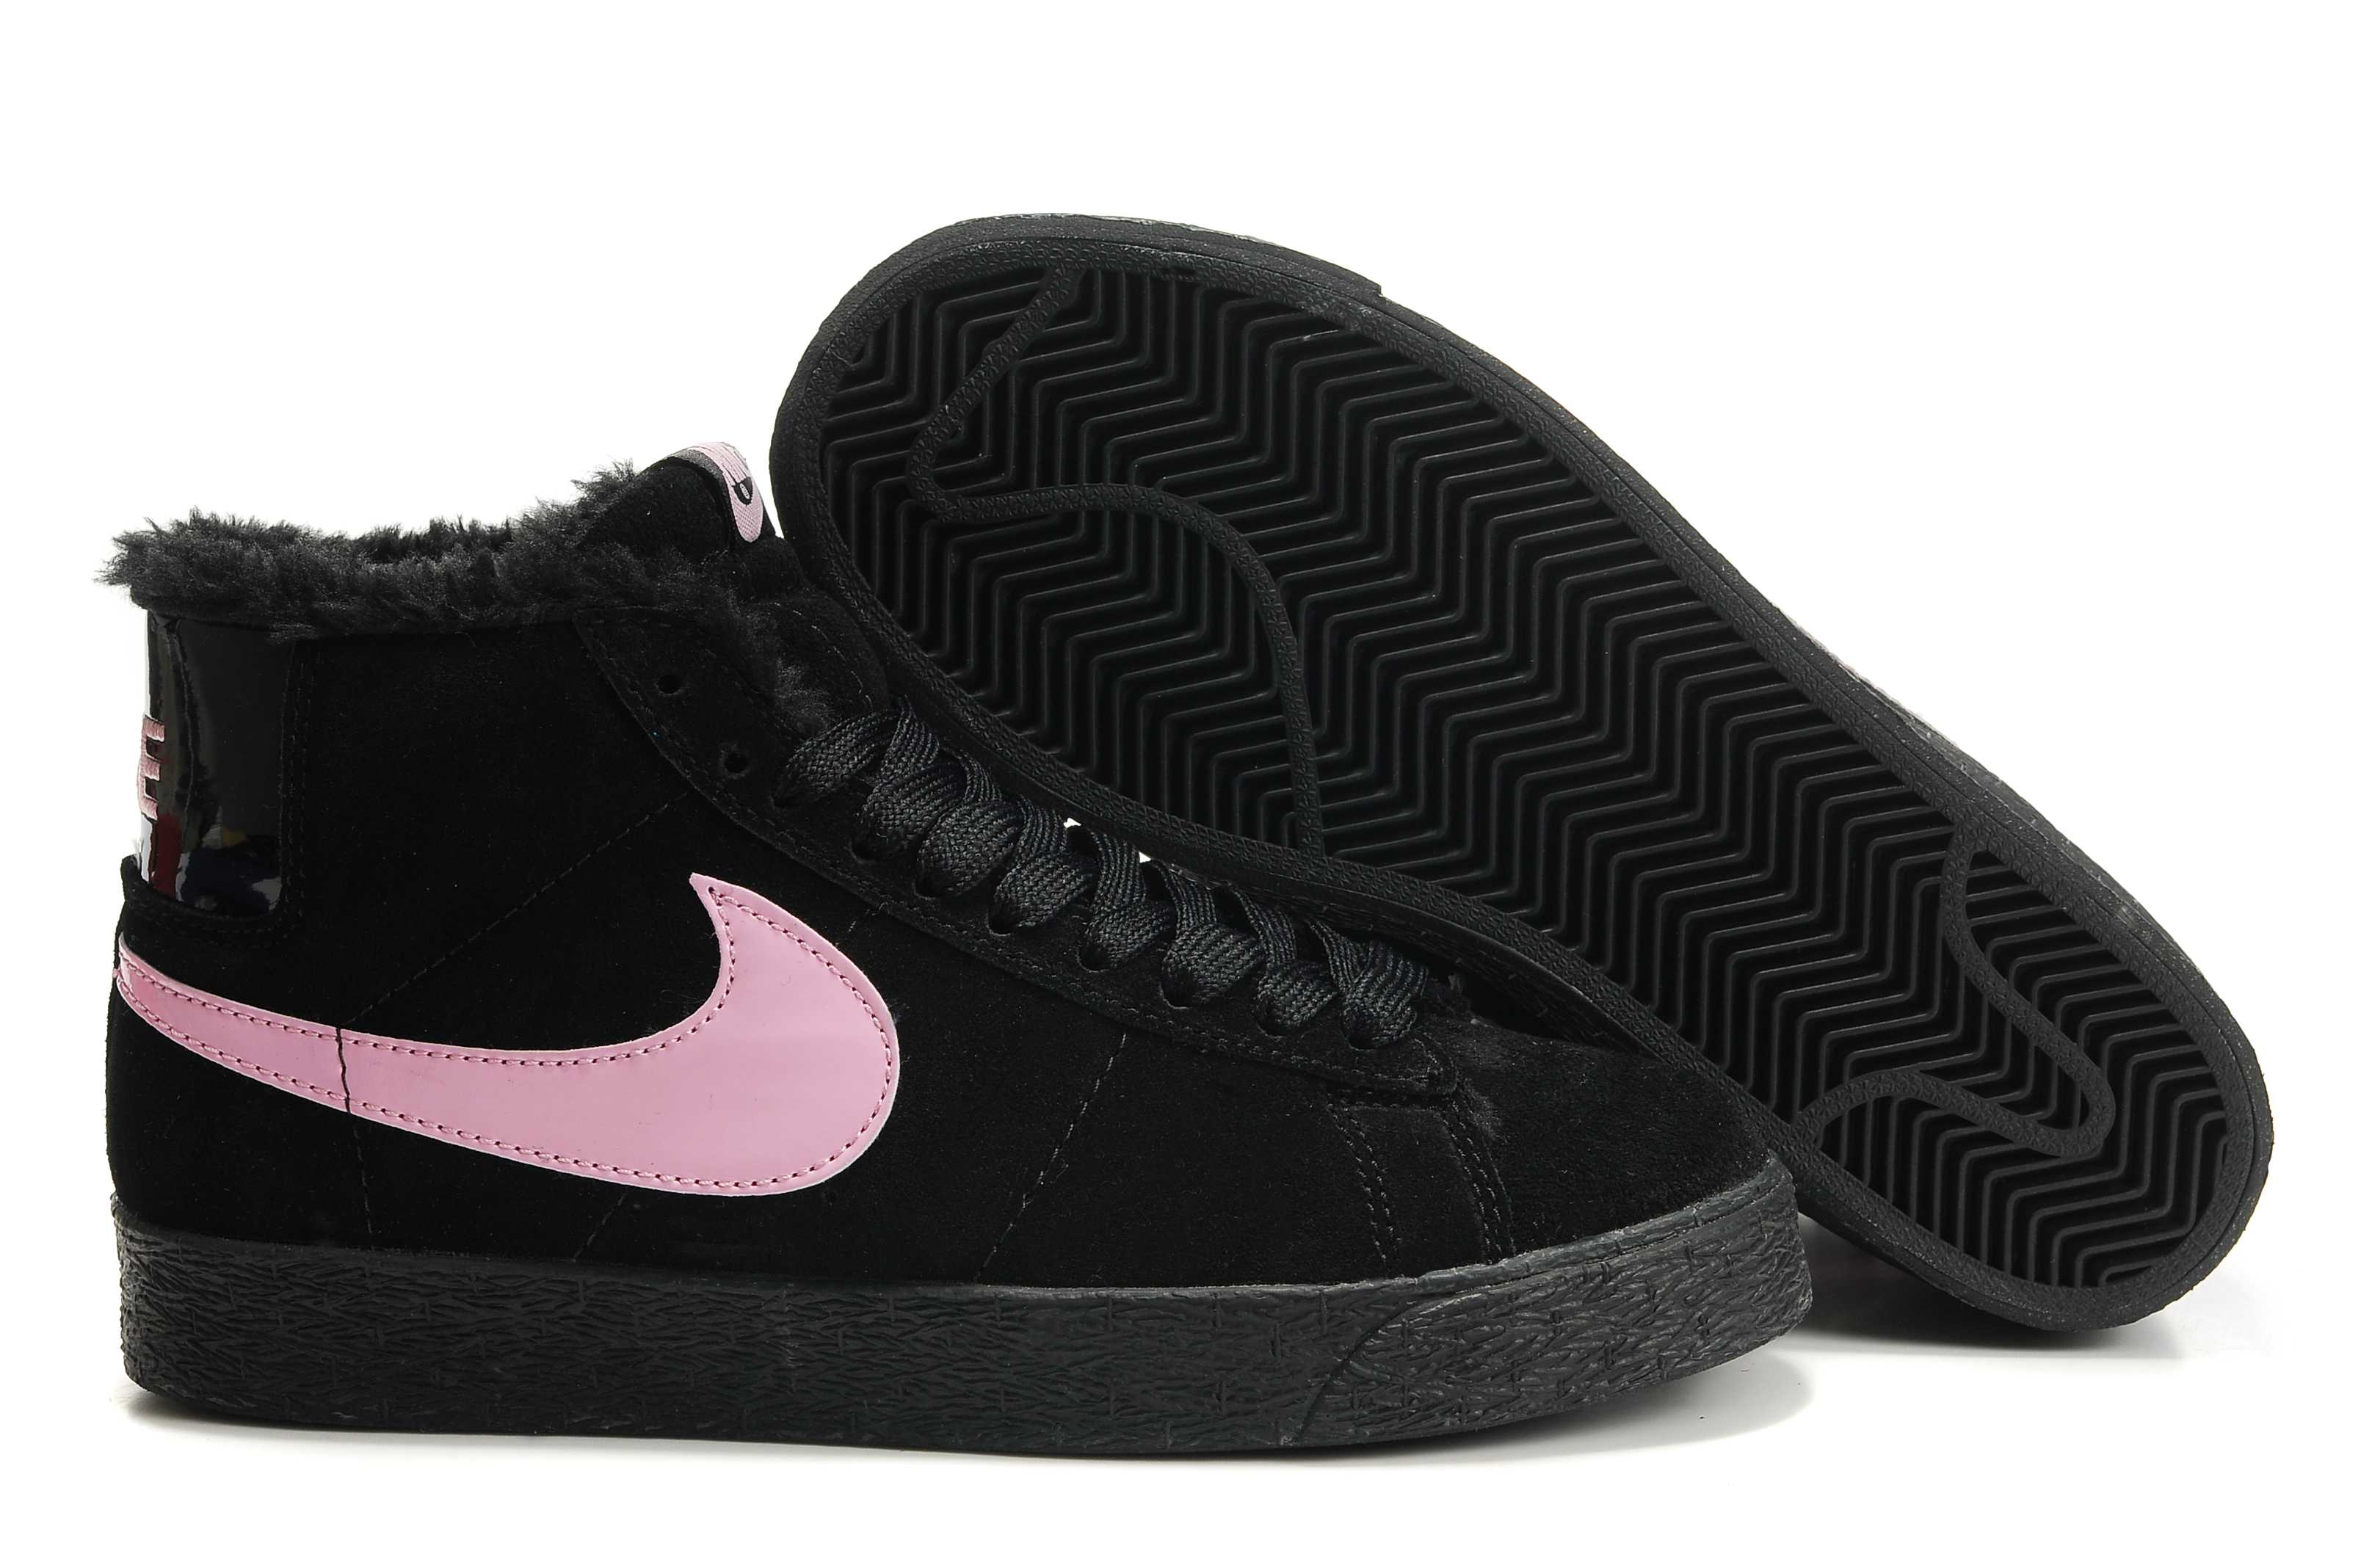 on sale 07e87 2aed3 ... nike sb blazer high high acheter en ligne magasin